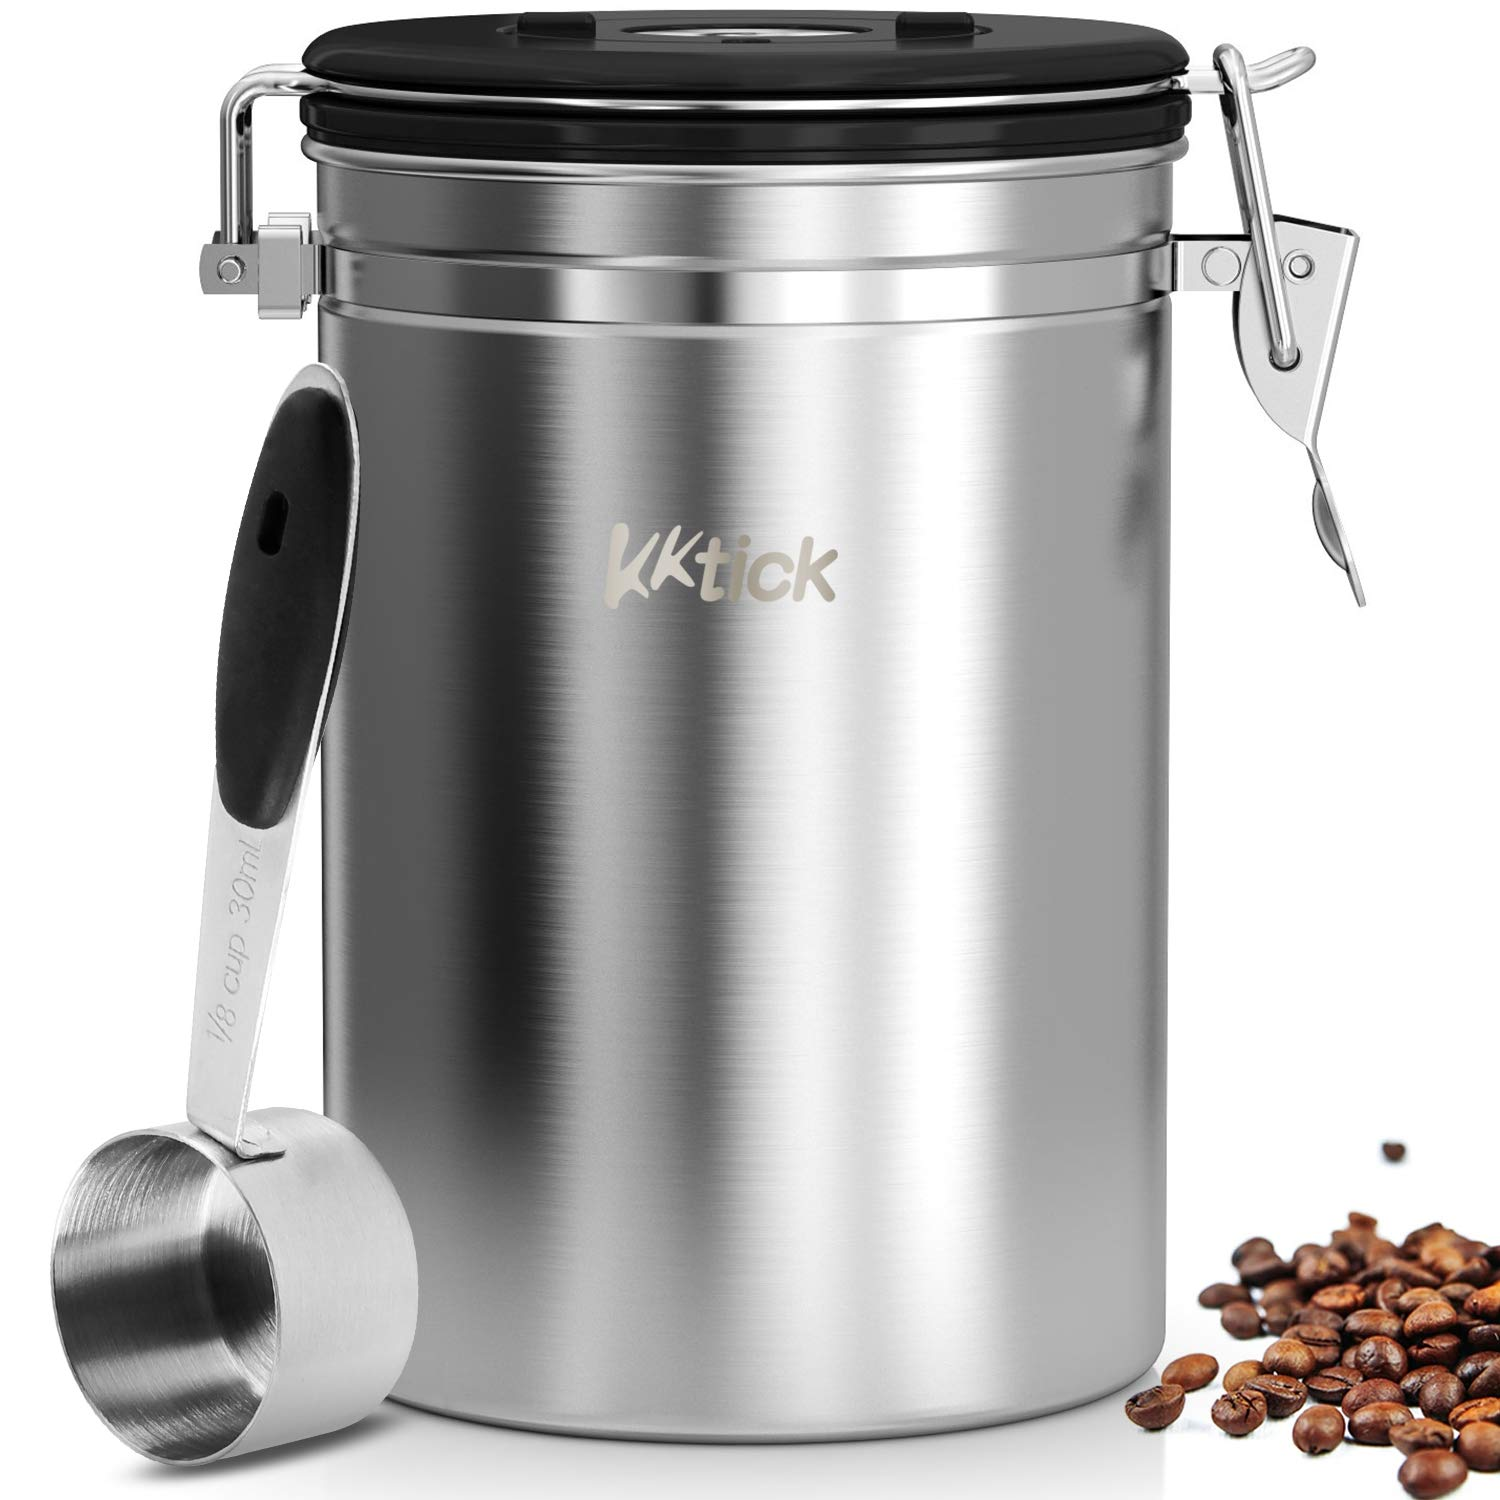 Airtight Coffee Canister, KKTICK Stainless Steel Coffee Container with Scoop, CO2 Vent Valve and Date Tracker Wheel, Storage Vault for Whole/Ground Coffee Bean, Keeps Your Coffee Fresh - Large